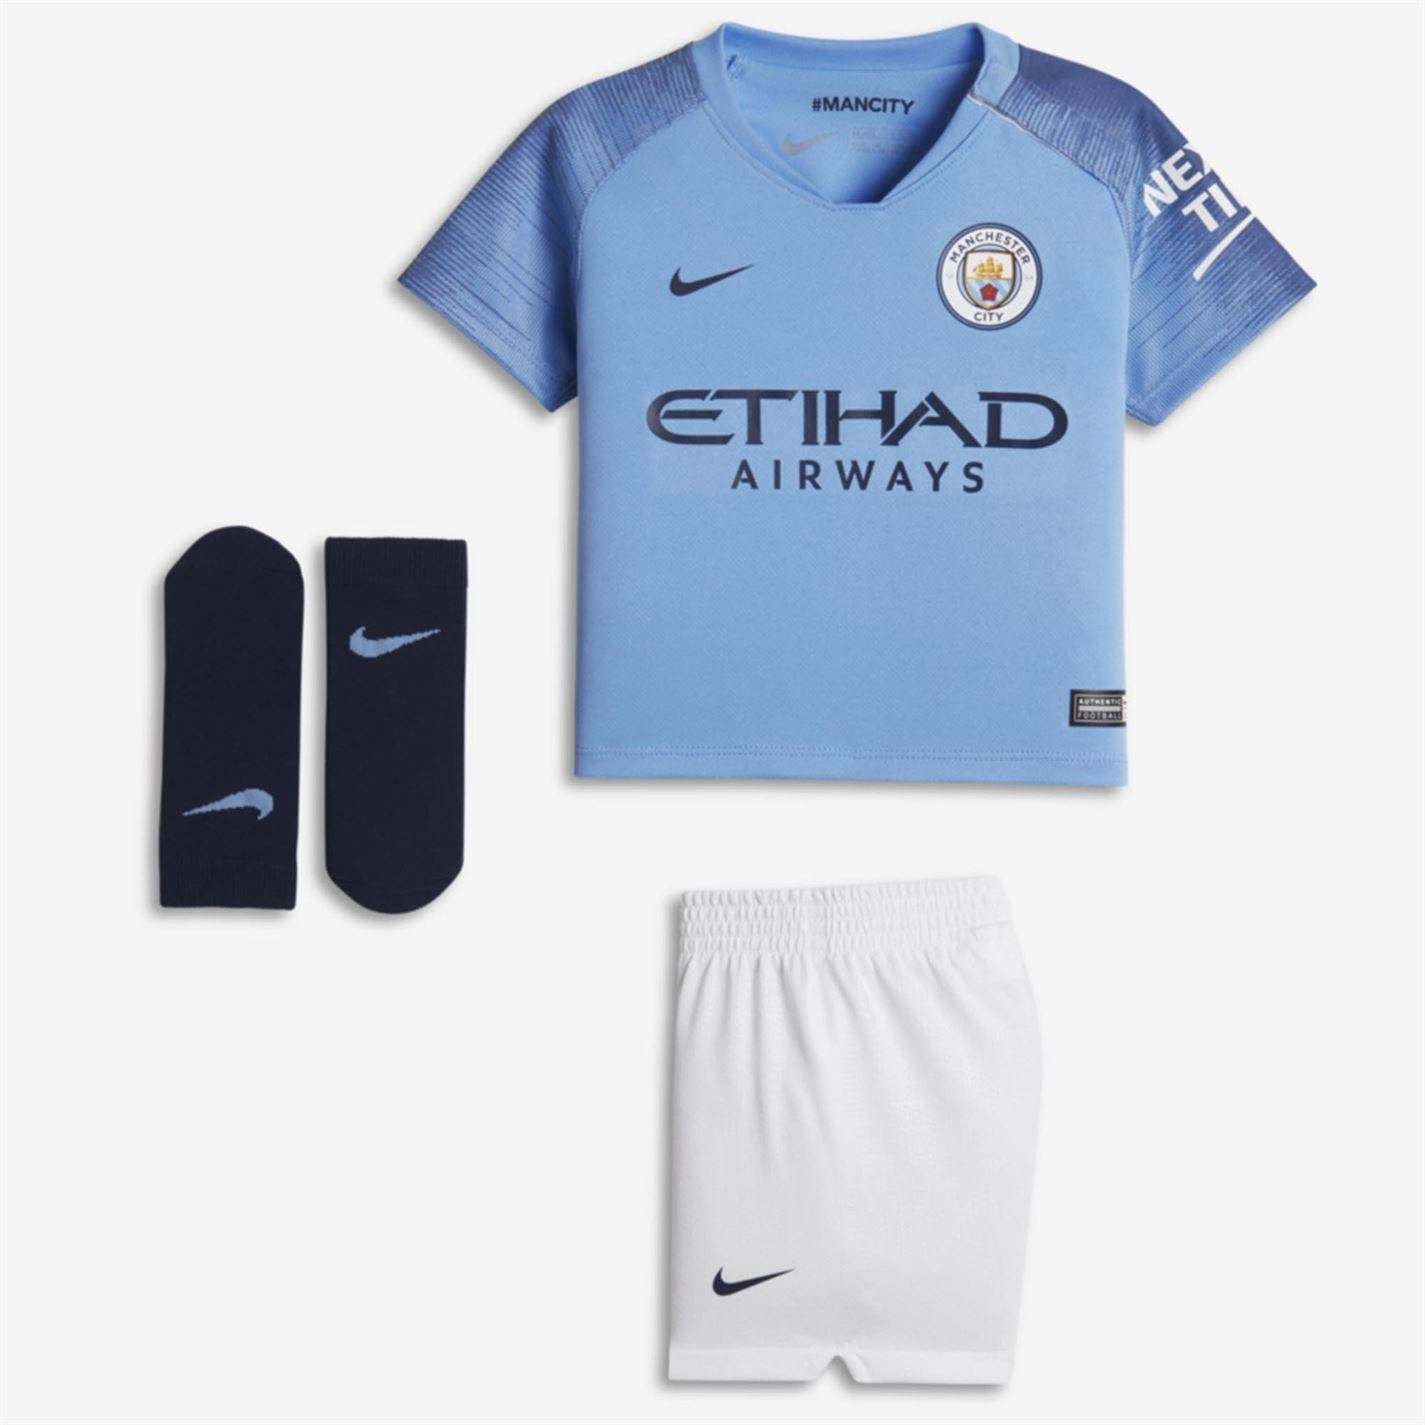 quality design d68d0 5844c Details about Nike Manchester City Home Baby Kit 2018 19 Infants Blue  Football Soccer Strip